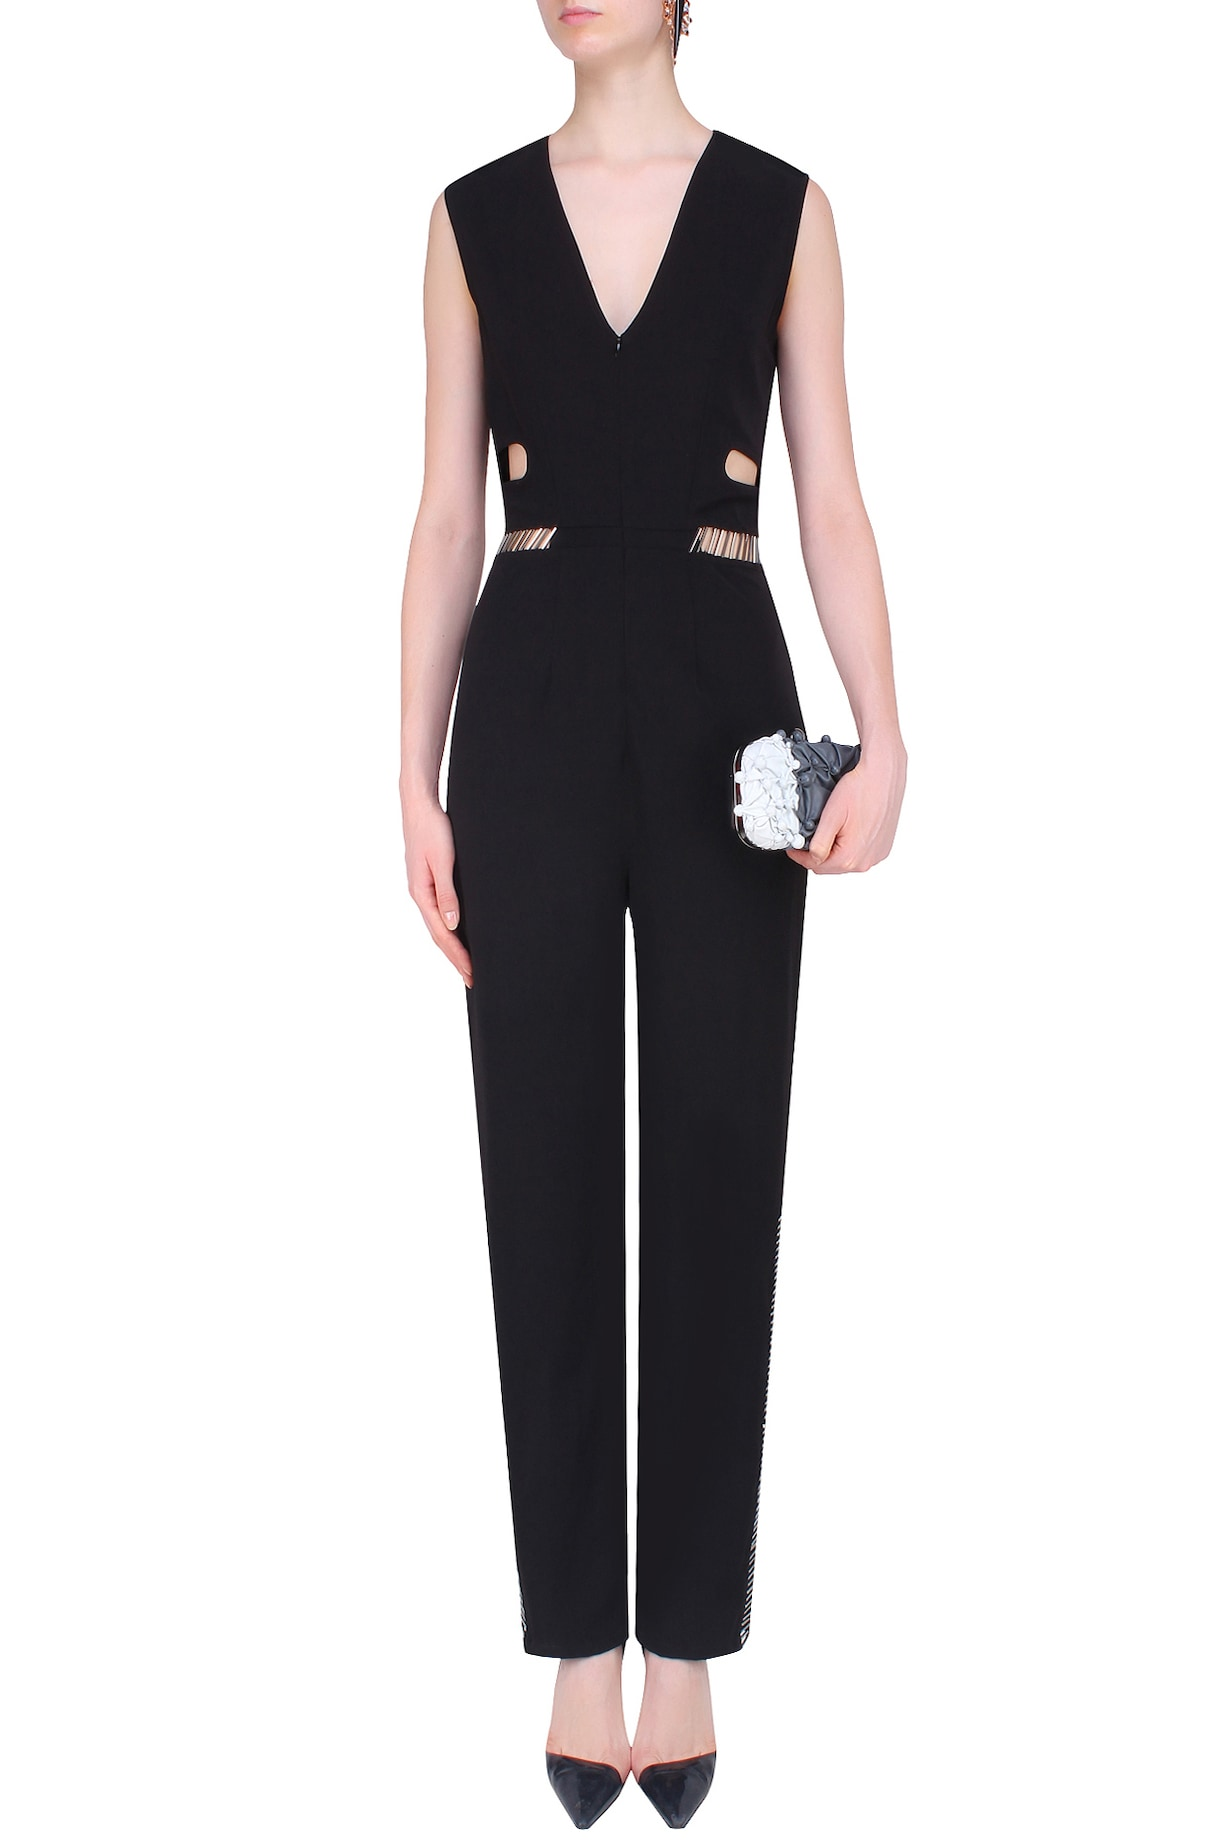 431-88 By Shweta Kapur Jump Suits